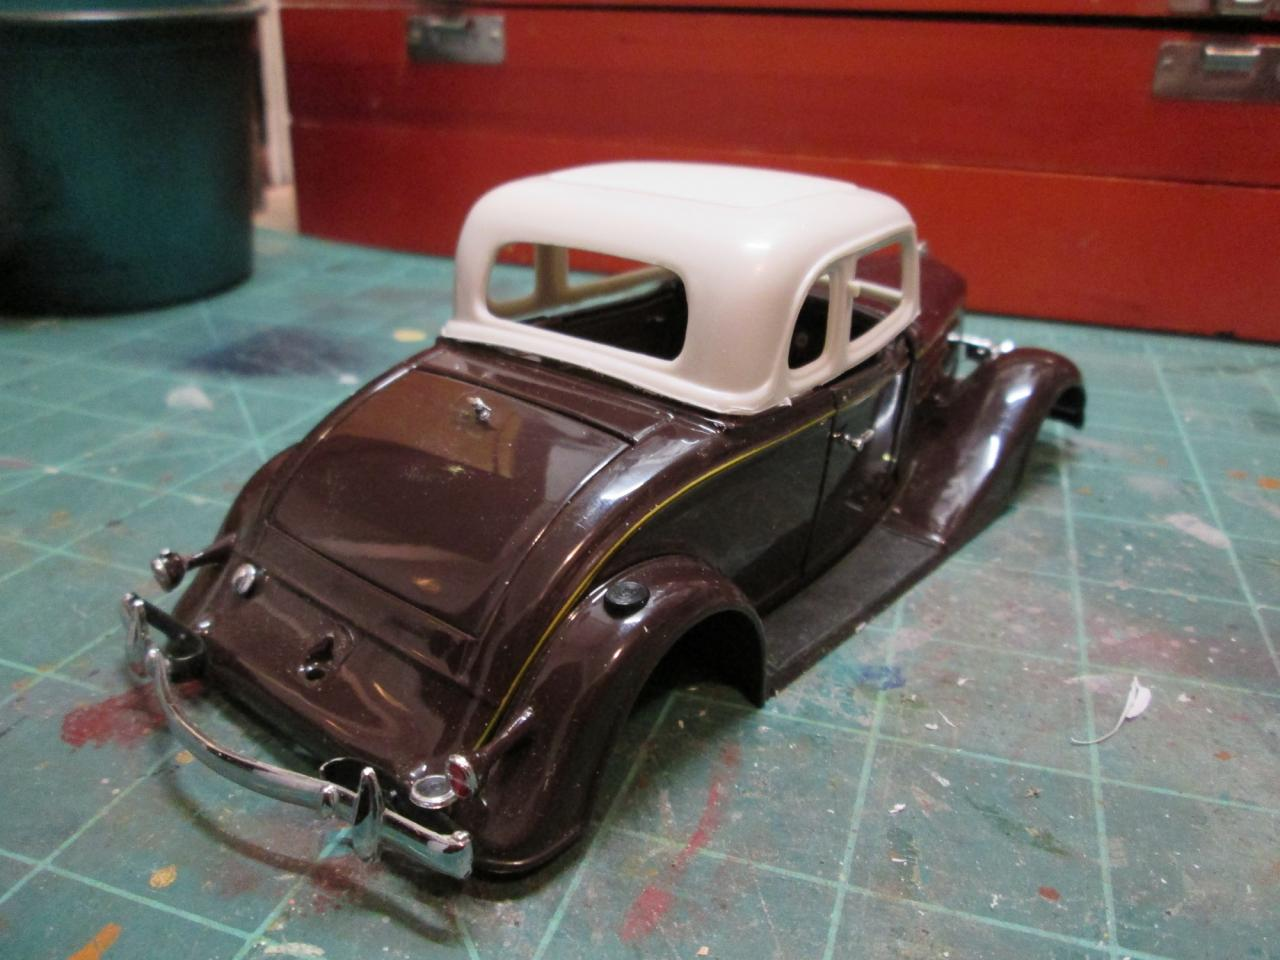 1934 Chevrolet Master 5-Window coupe  - On The Workbench